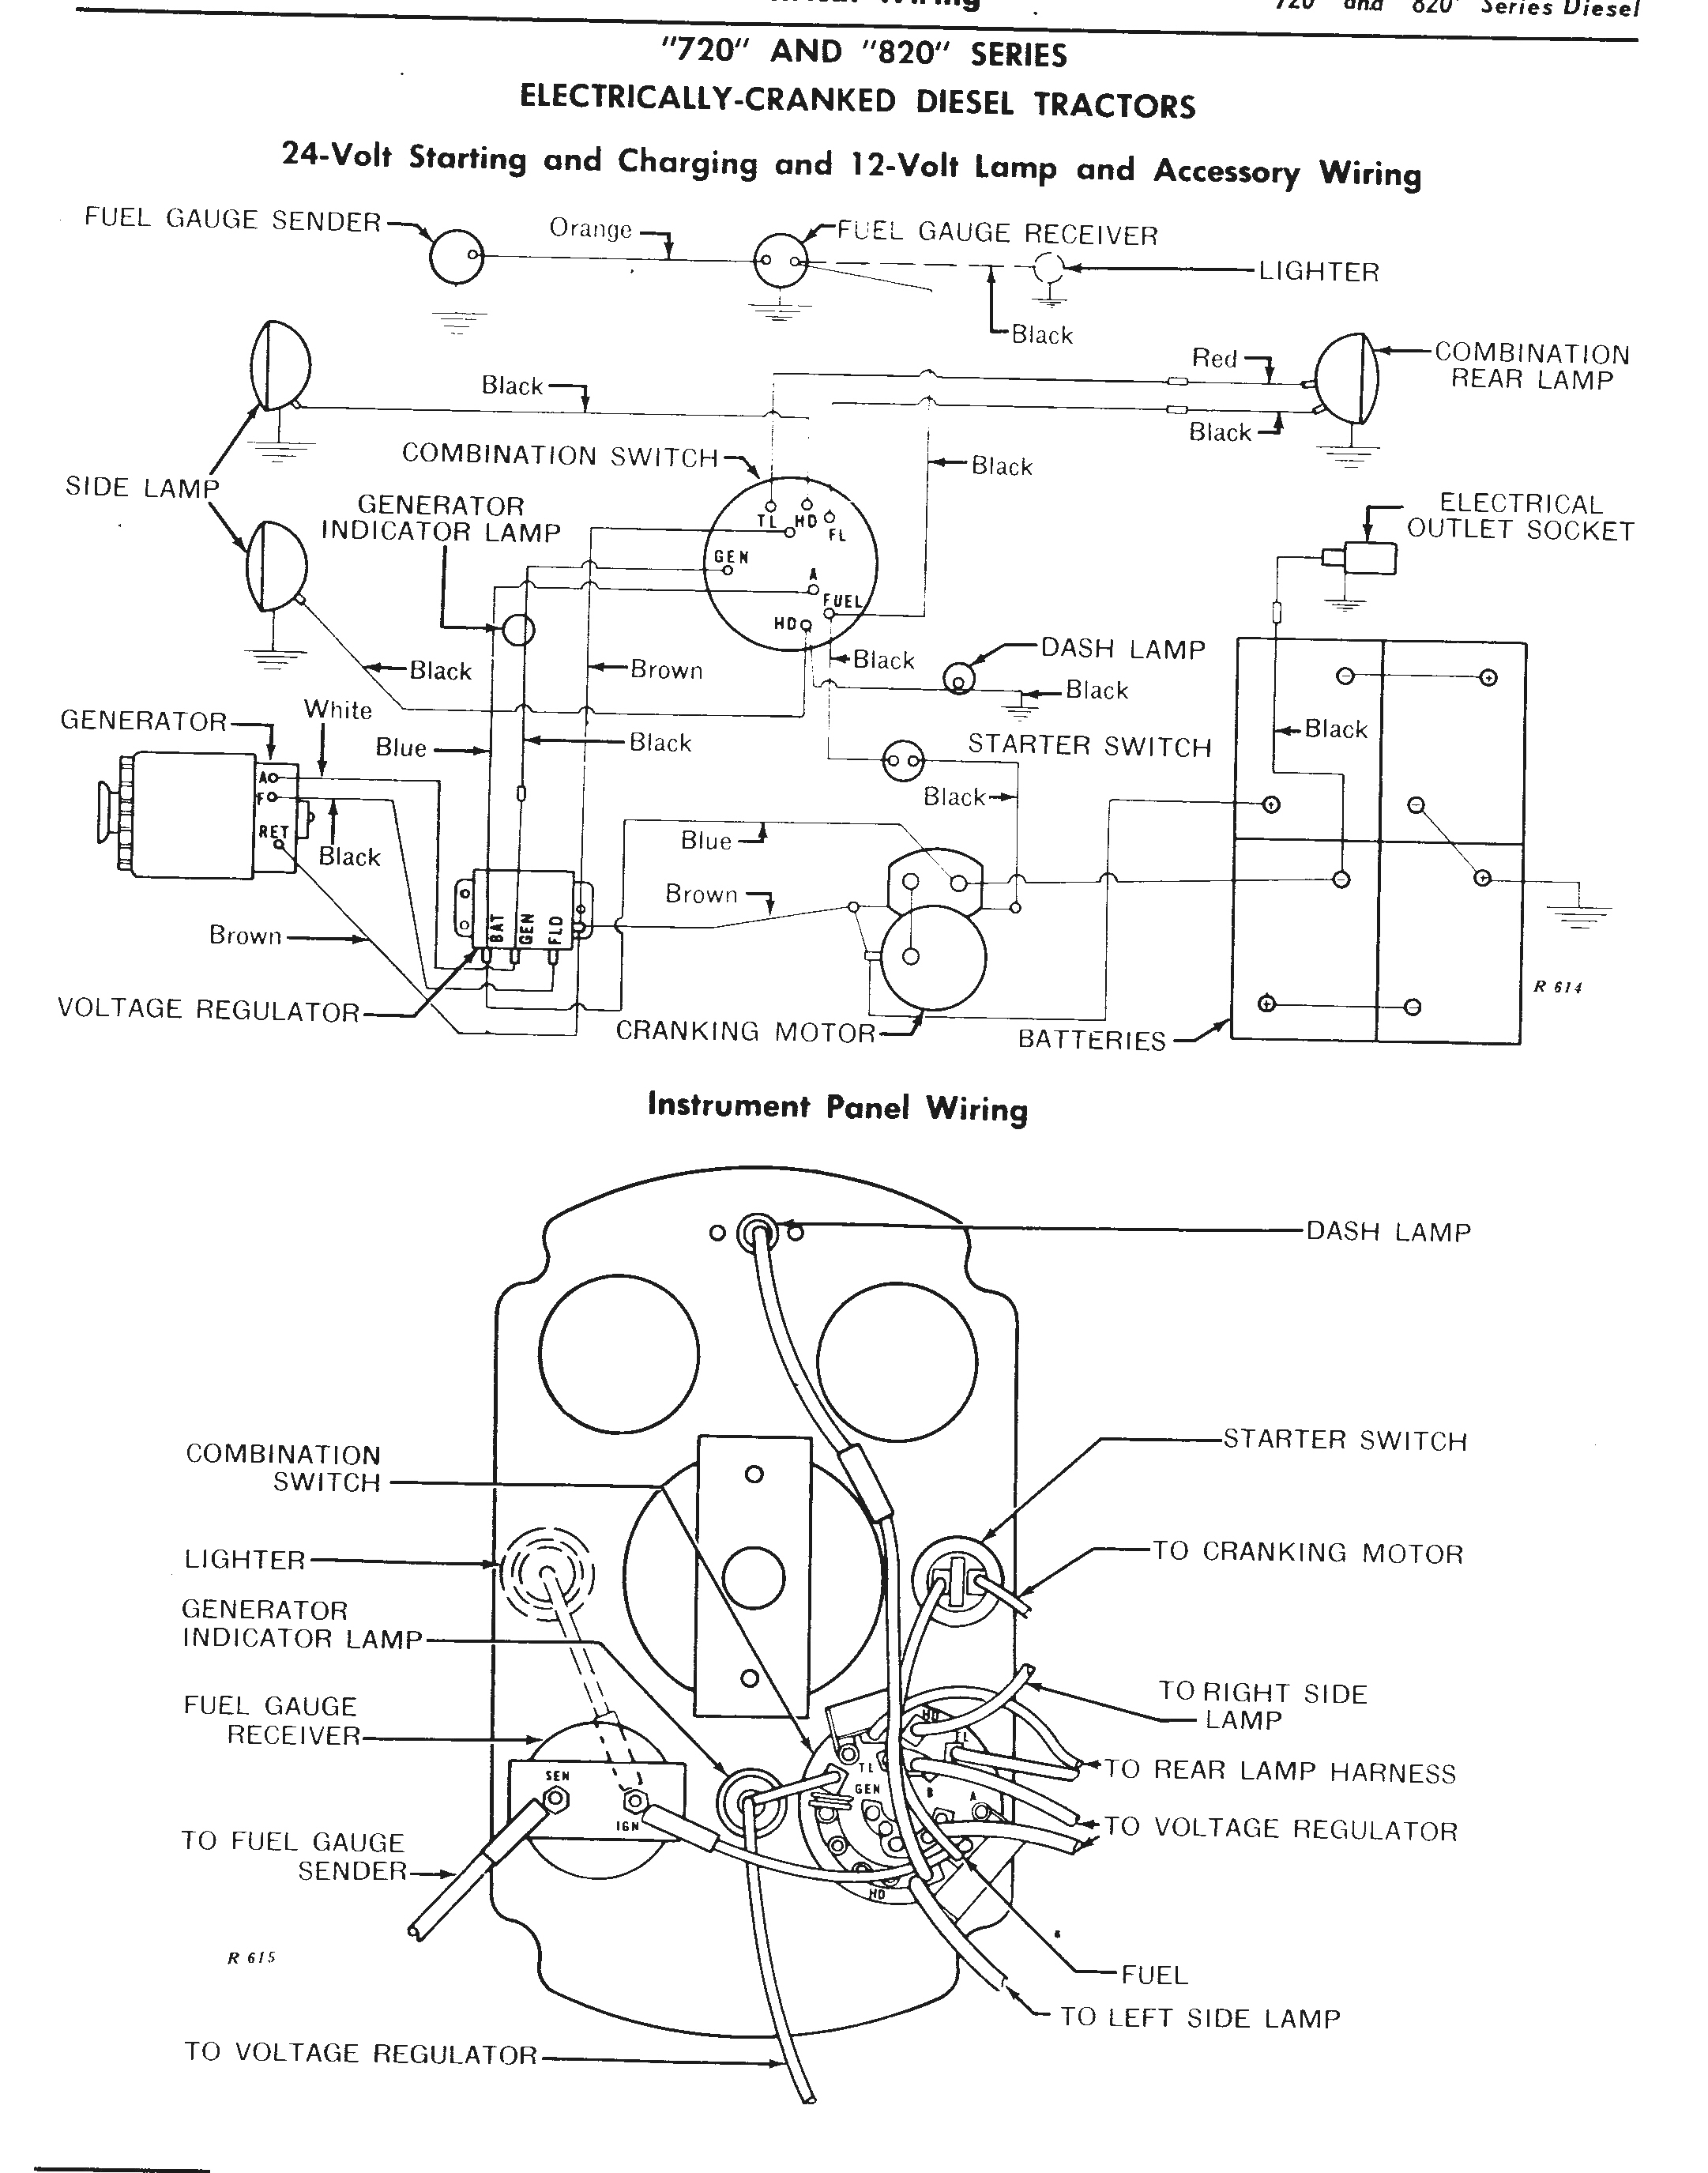 the john deere 24 volt electrical system explained rh petcaretips net MF 35 Wiring-Diagram MF 35 Wiring-Diagram